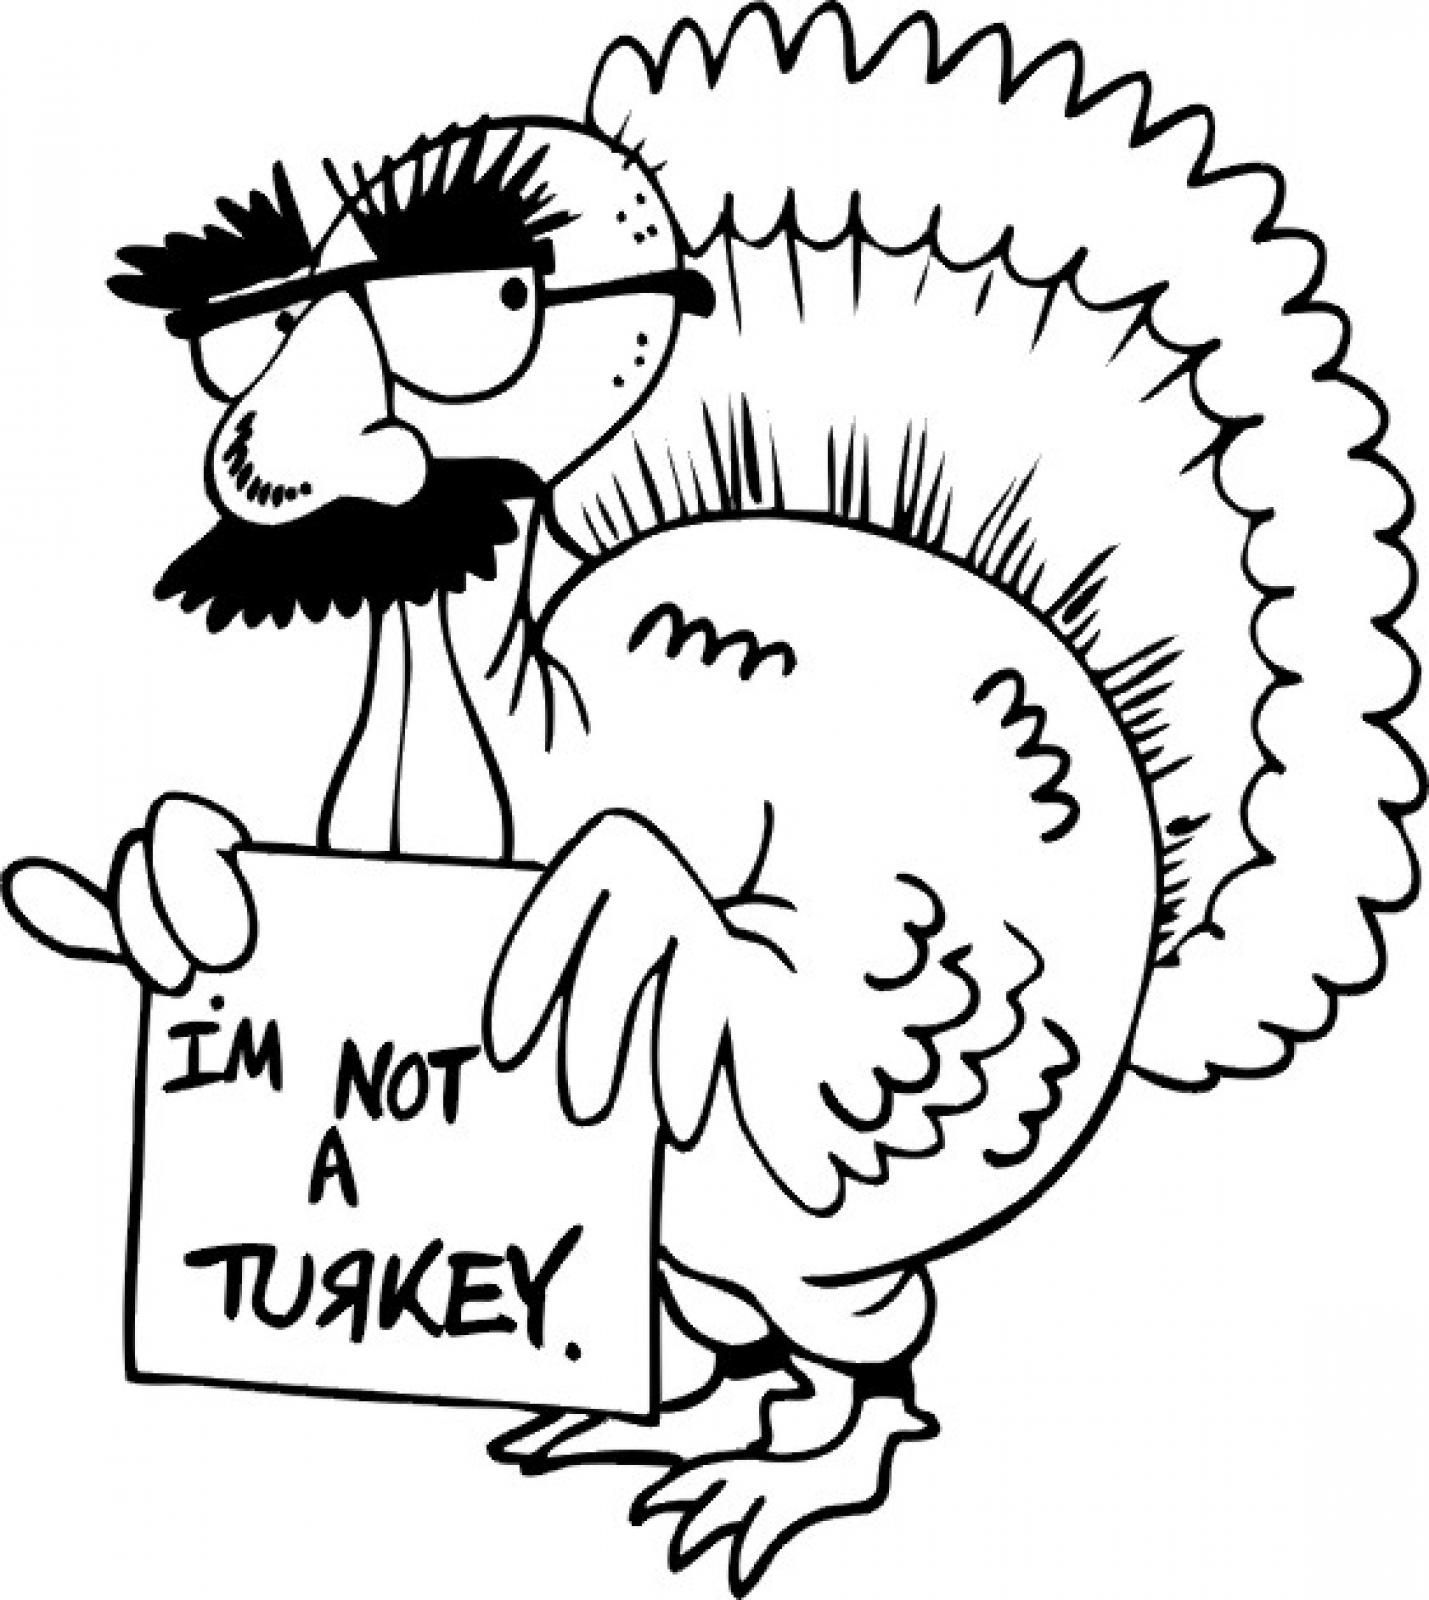 Free Funny Turkey Coloring Page, Download Free Clip Art.